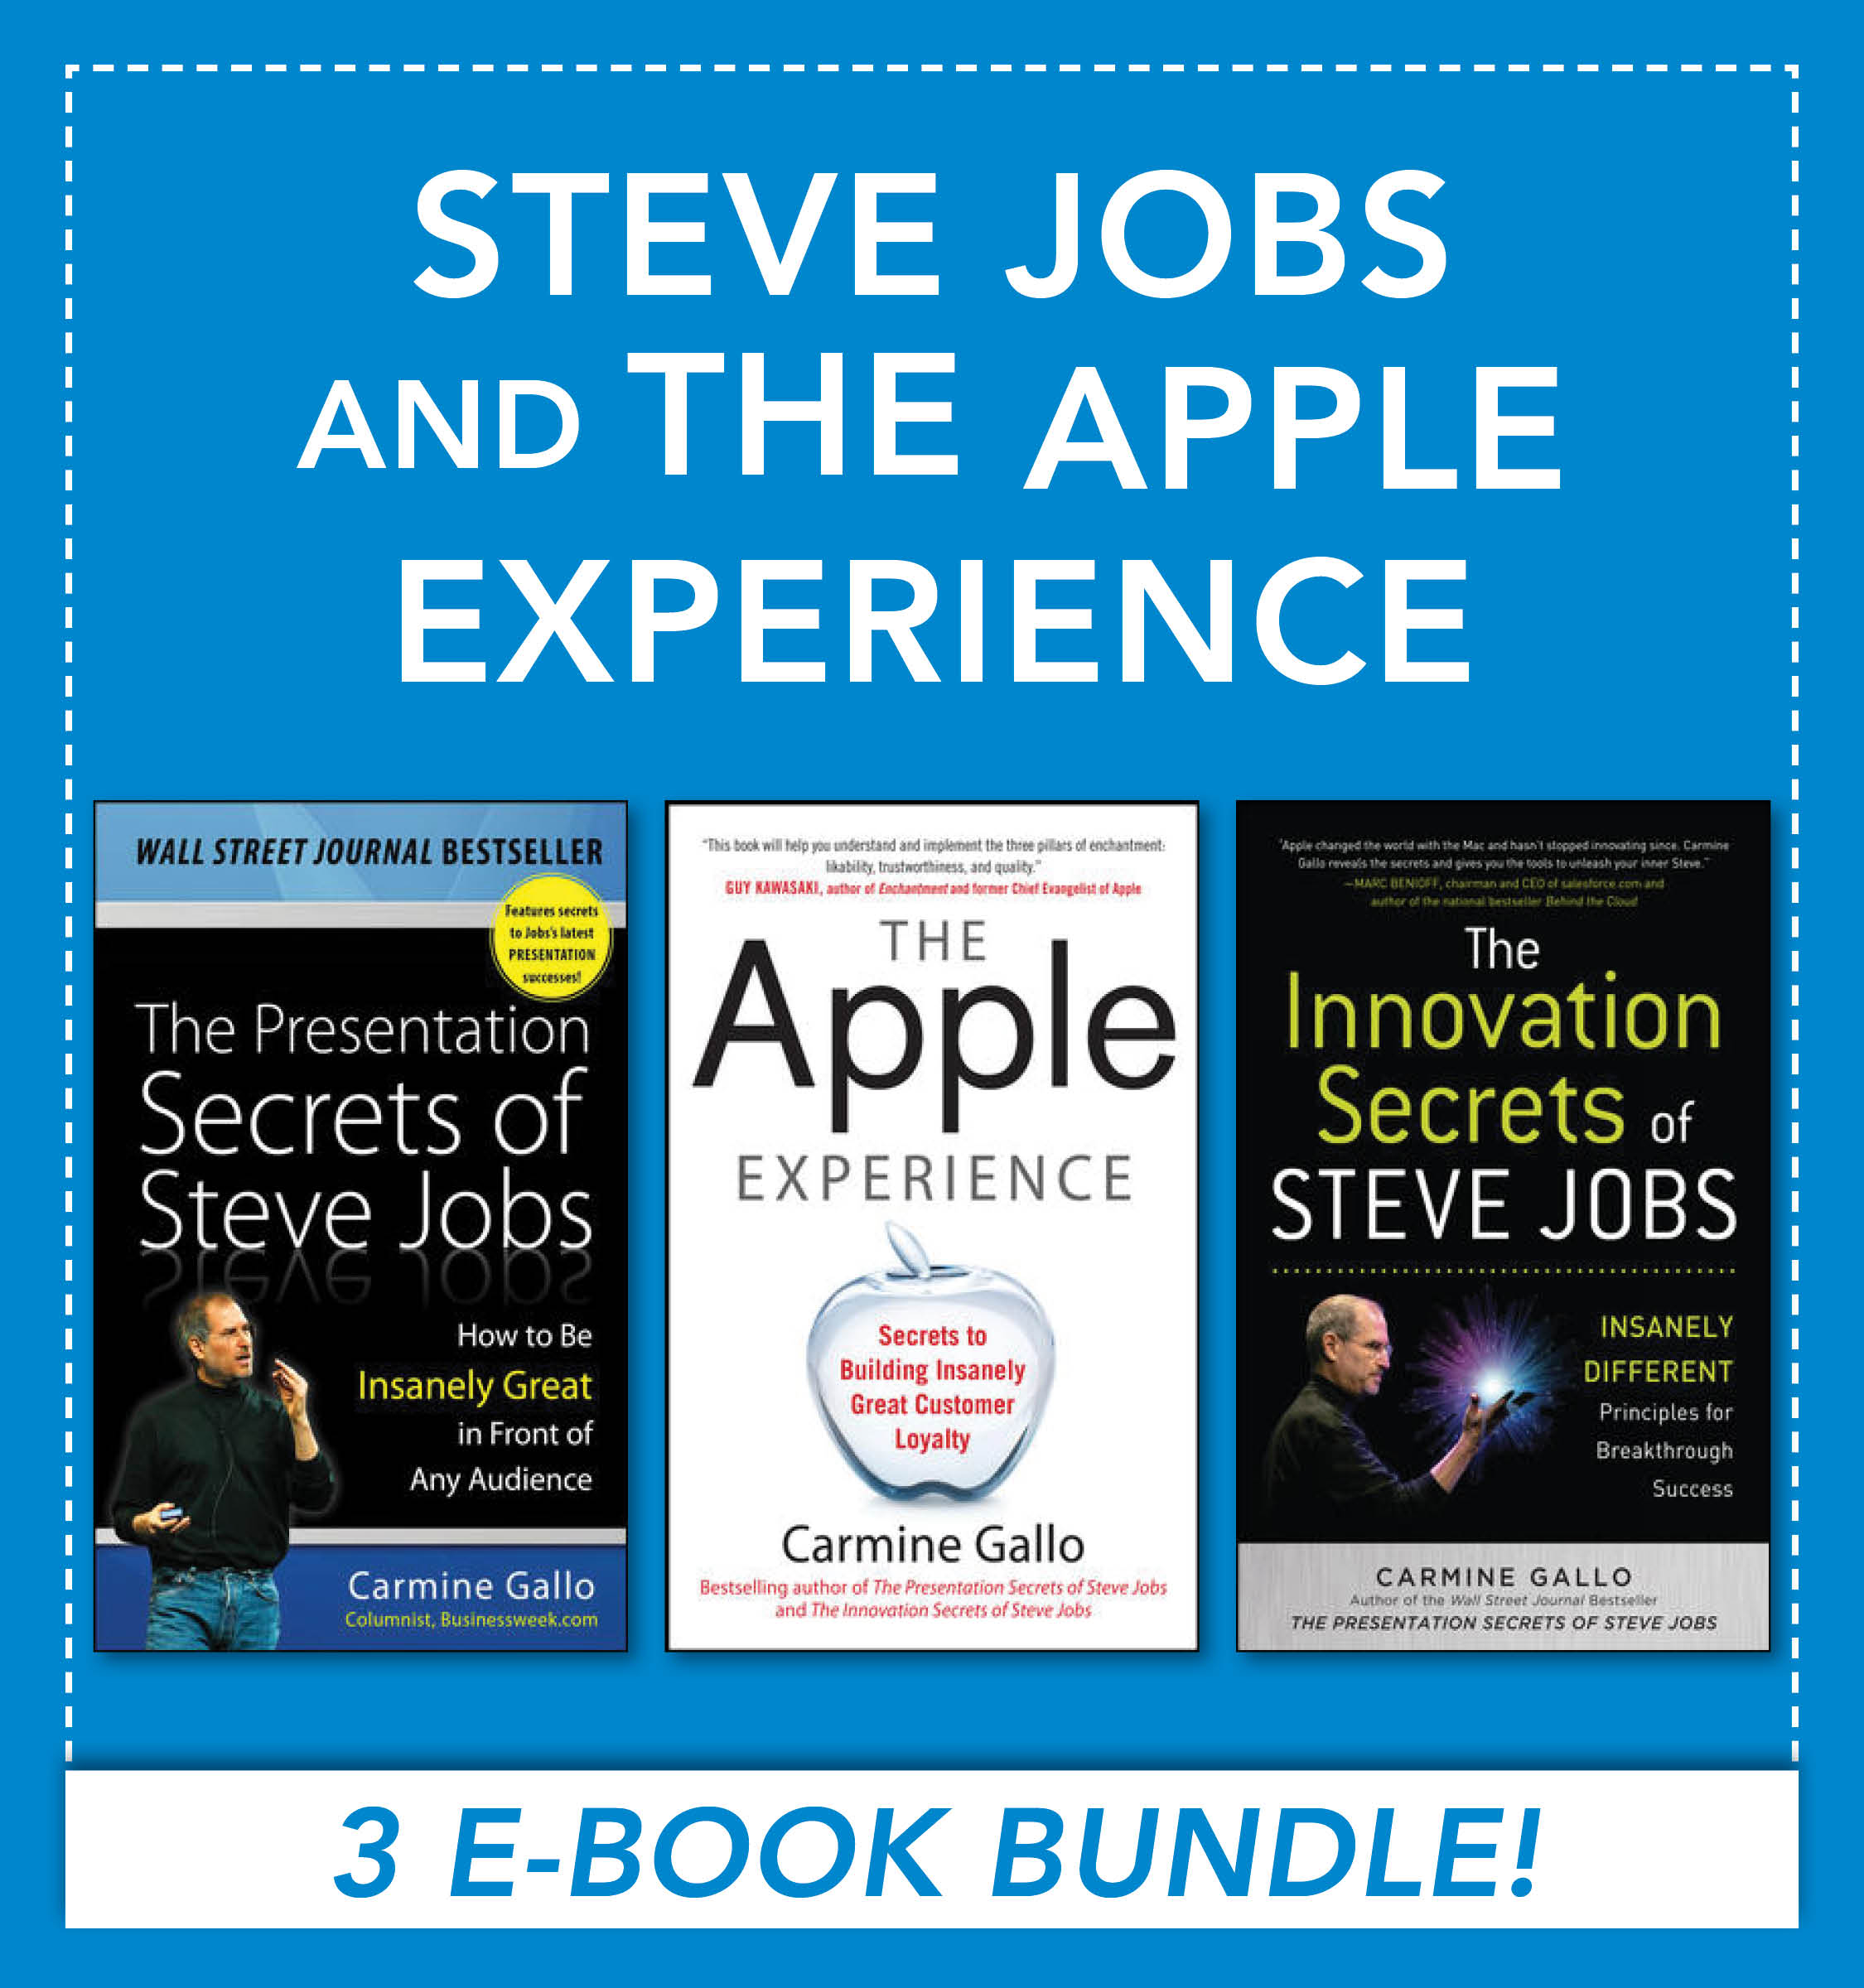 Download Ebook Steve Jobs and the Apple Experience (EBOOK BUNDLE) by Carmine Gallo Pdf